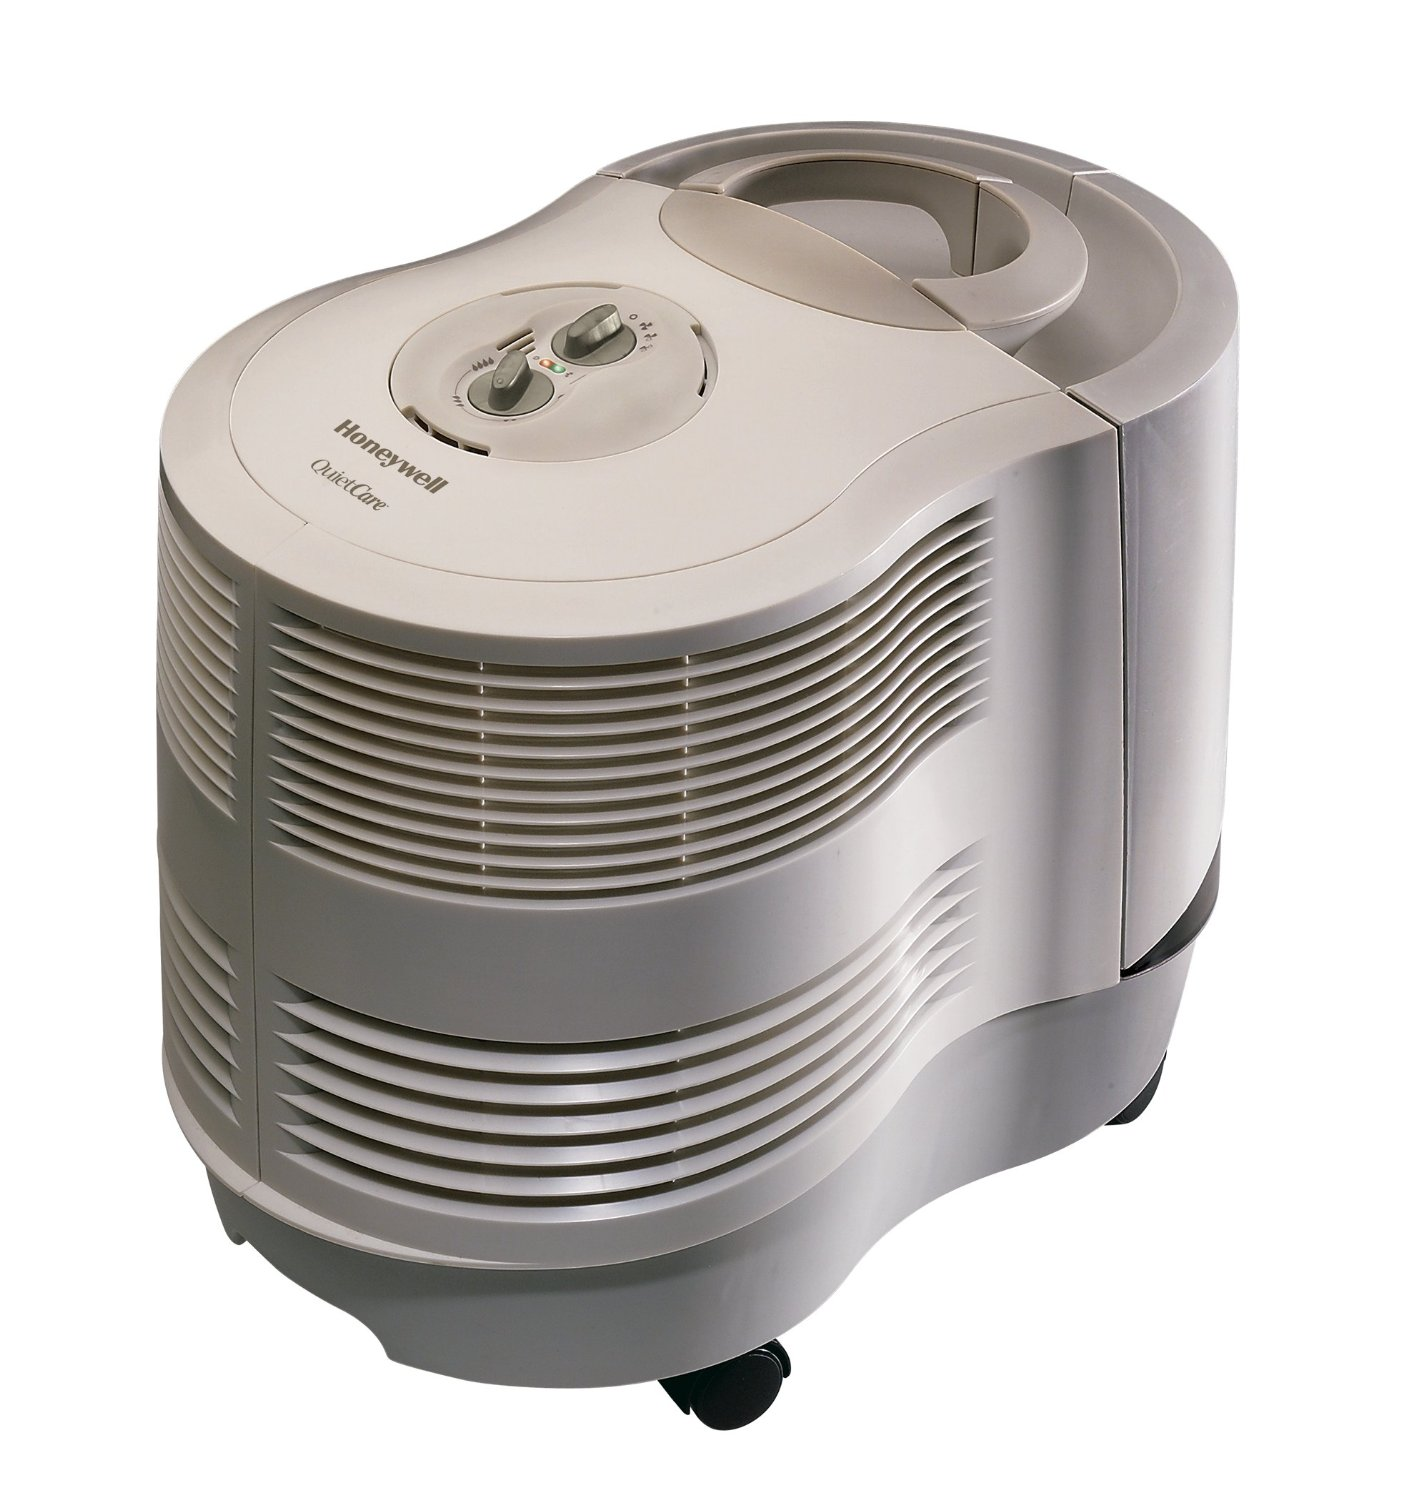 Honeywell QuietCare Humidifier HCM-6009